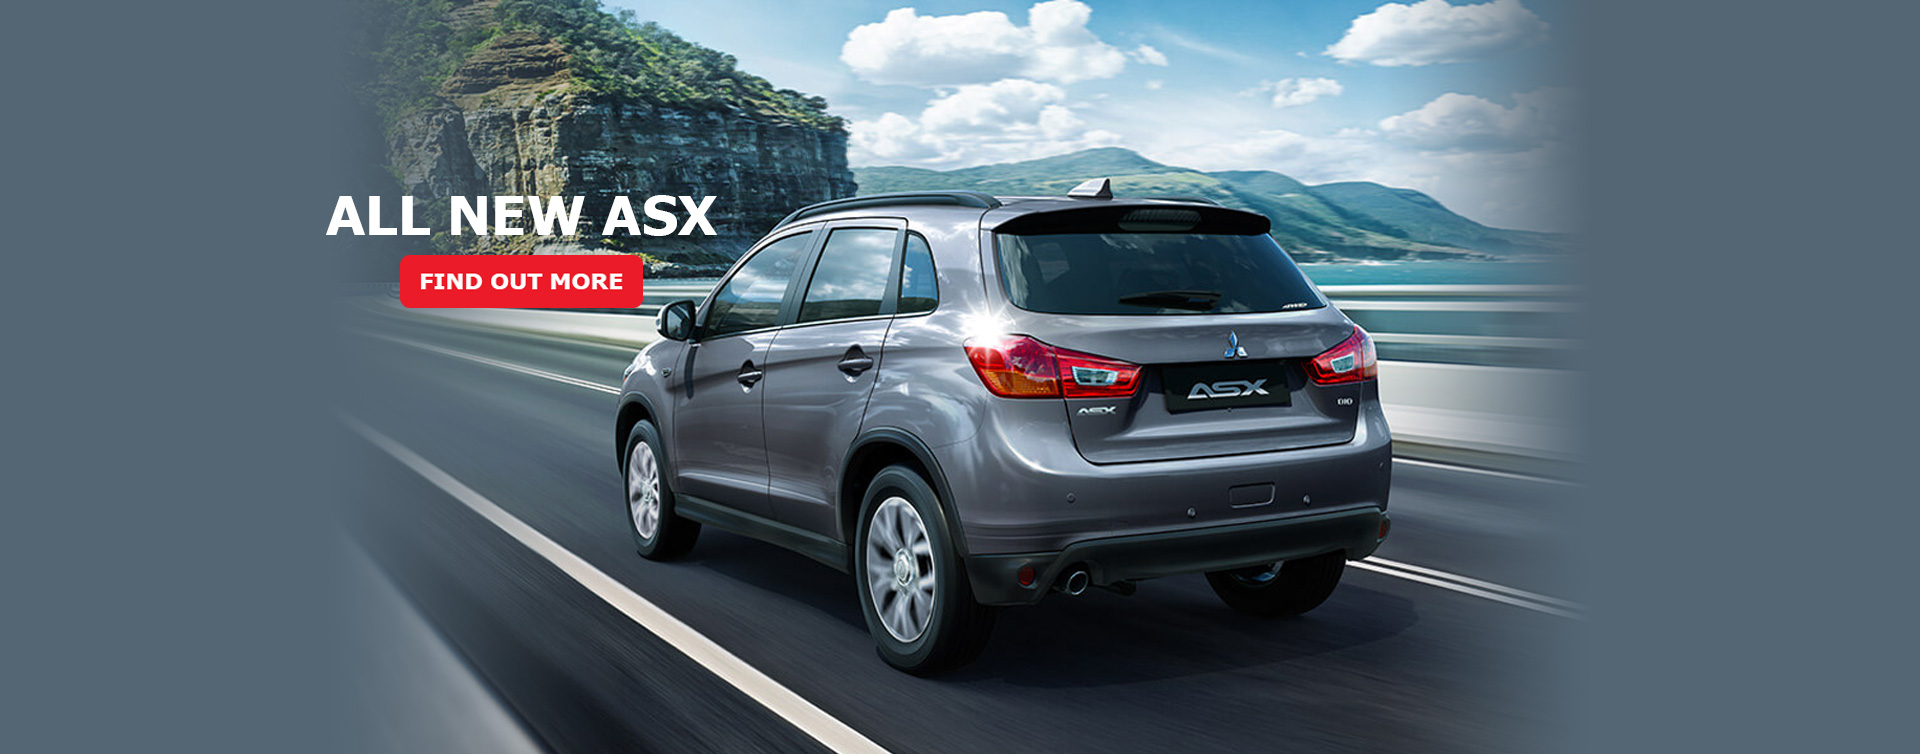 The all-new Mitsubishi ASX is now available to test drive at Nundah Mitsubishi Brisbane.